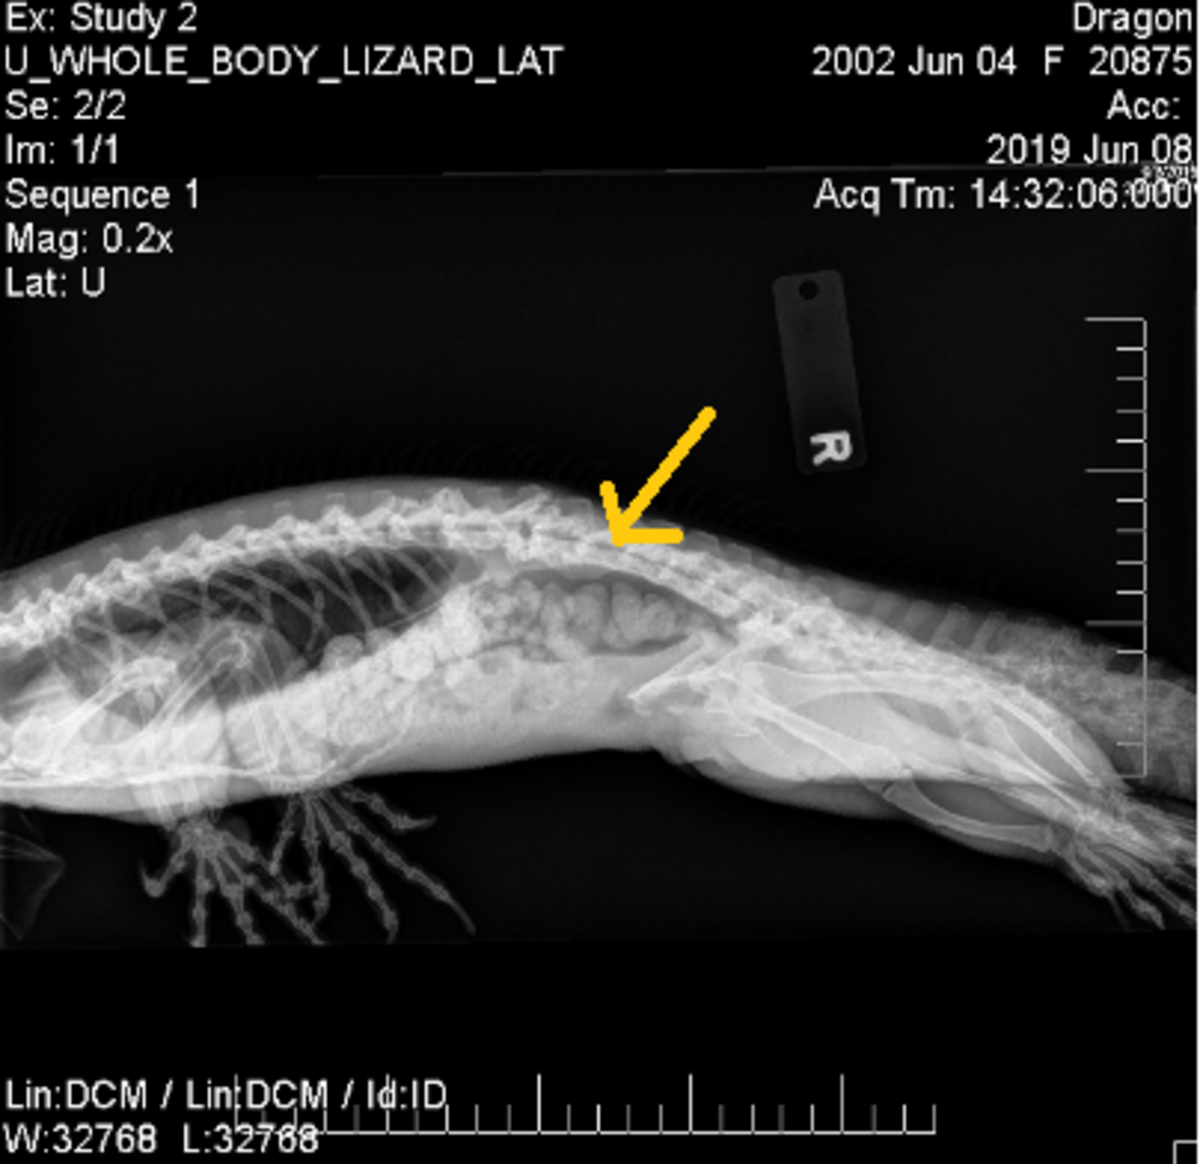 The yellow arrow points to the area where the poop had stalled. Notice how high this area is and why massaging the belly wouldn't access this point. The bladder on the other hand, is below.